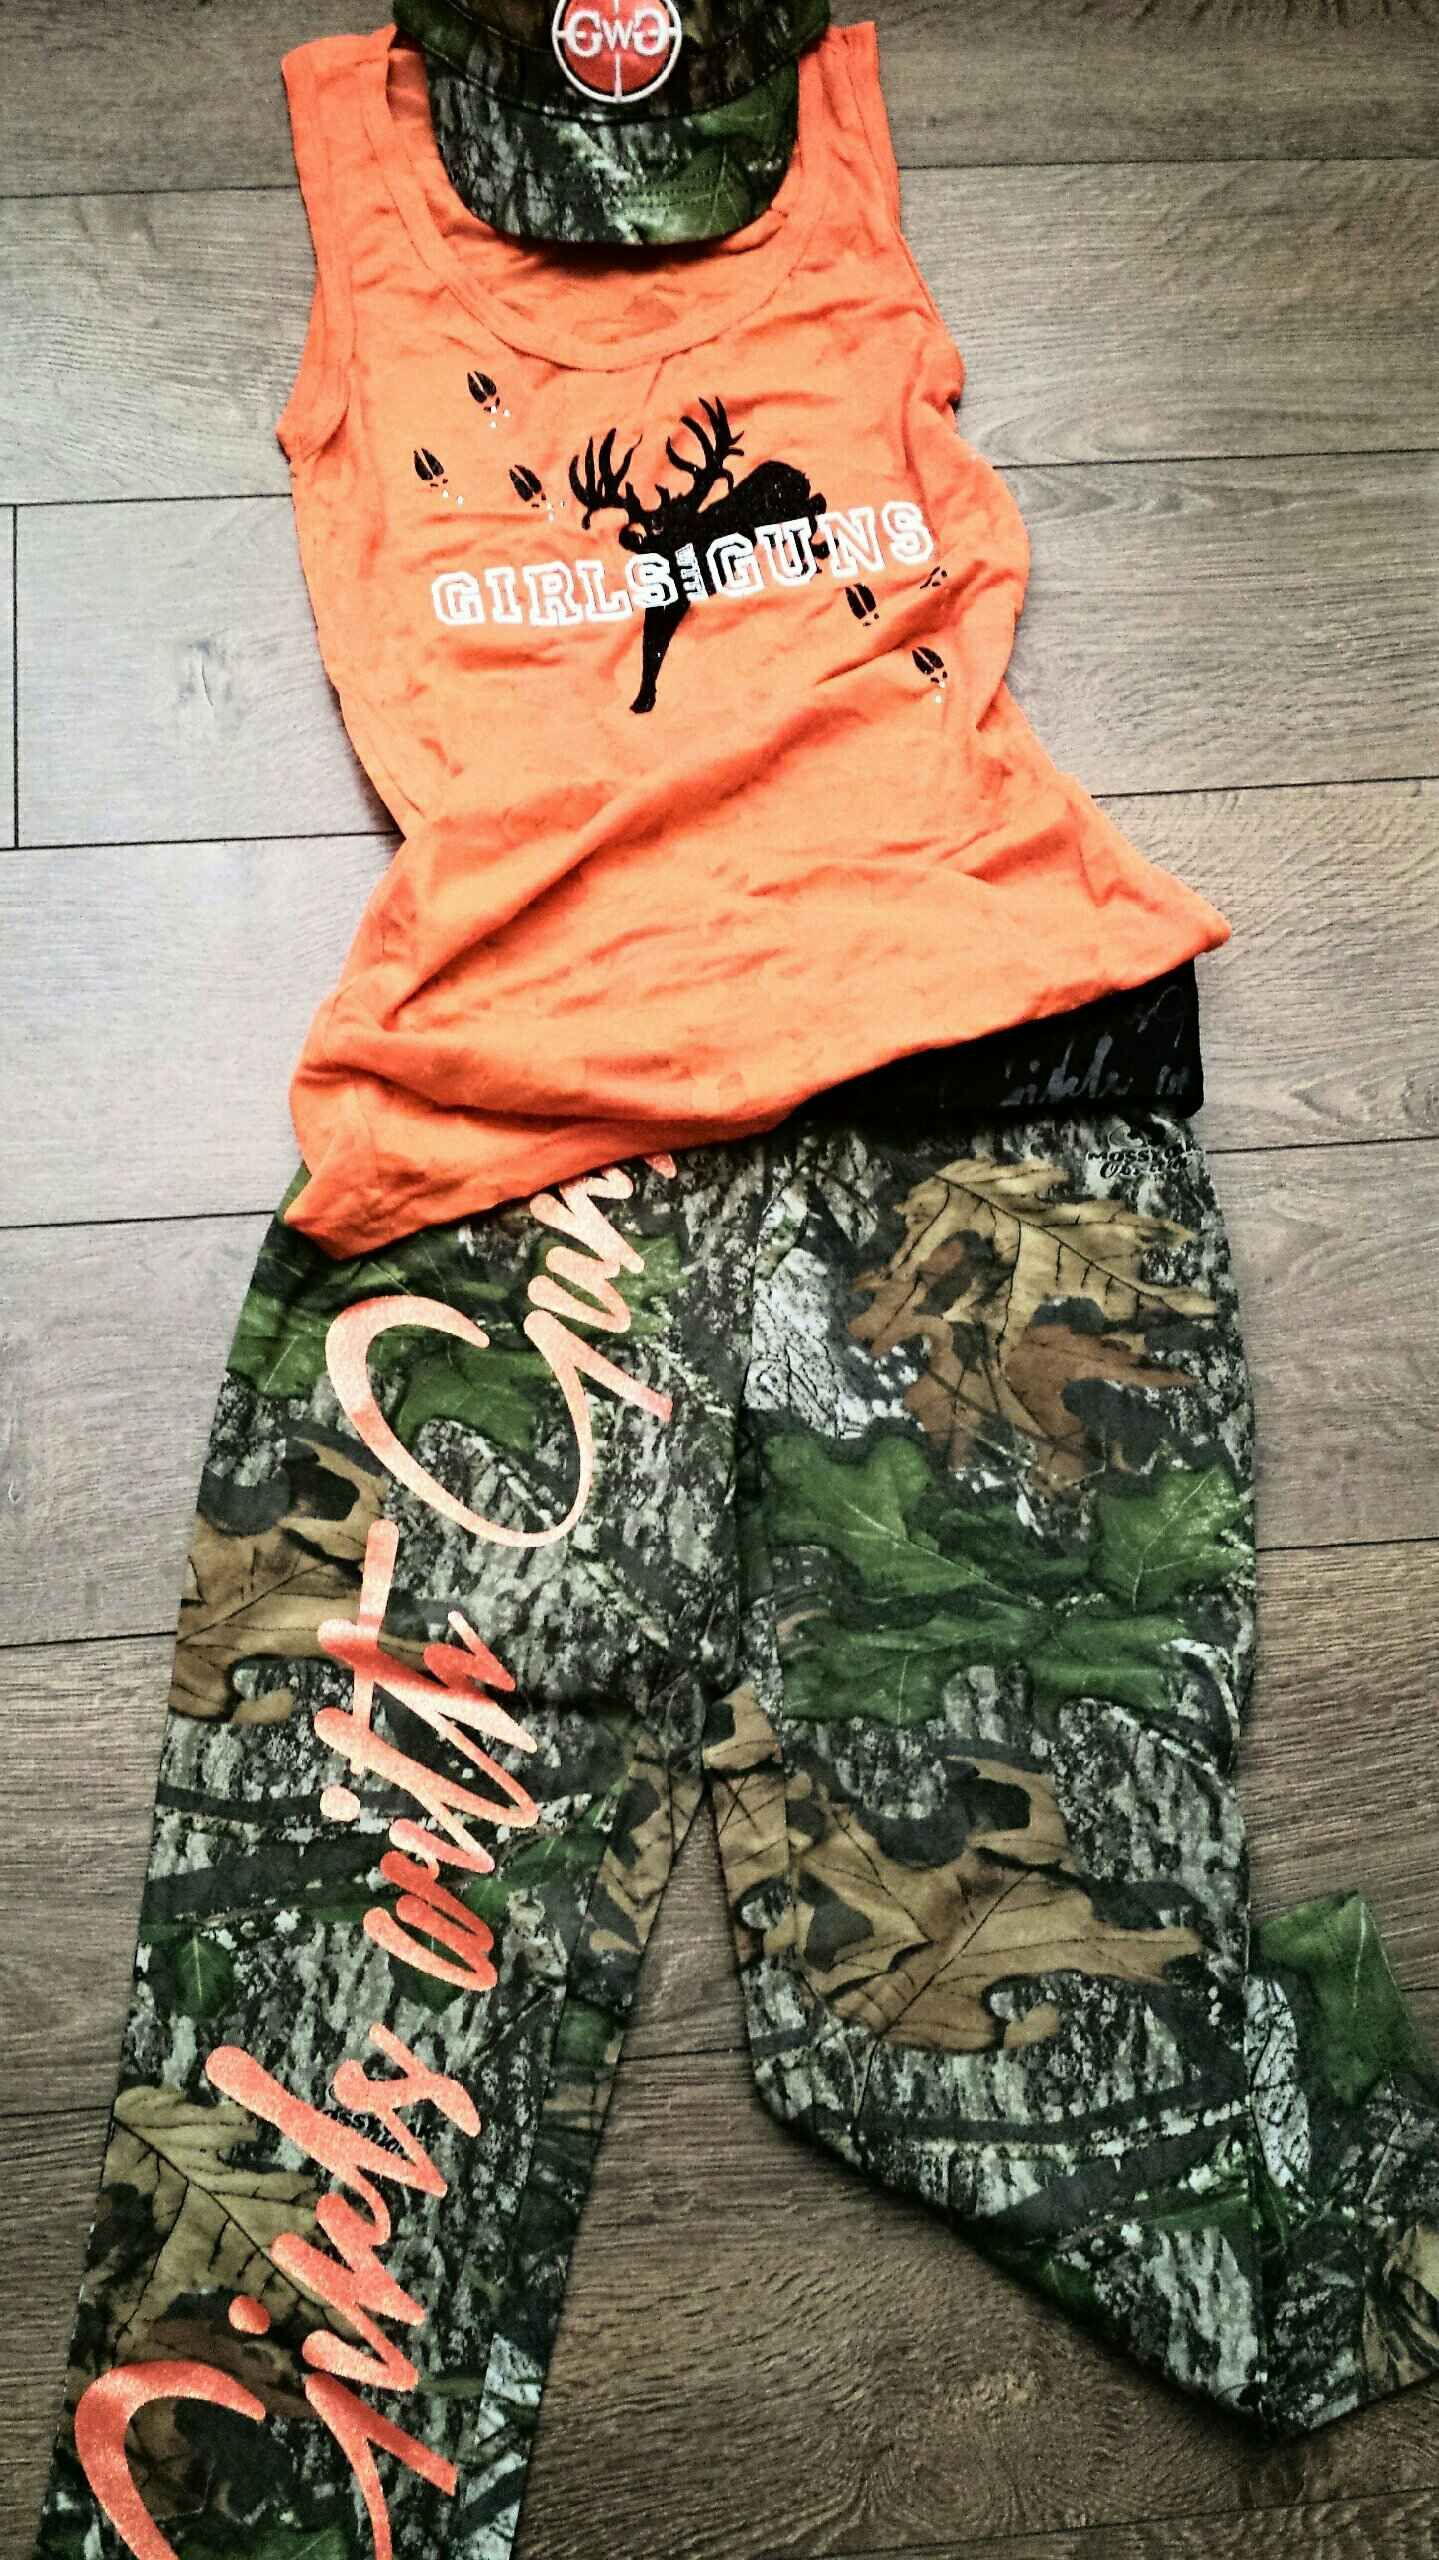 Gwg Mossyoak Obsession Camo Capris Blaze Orange Burnout Tank Girls With Guns Clothing Www Gwgclothing Com Country Outfits Camo Outfits Fashion